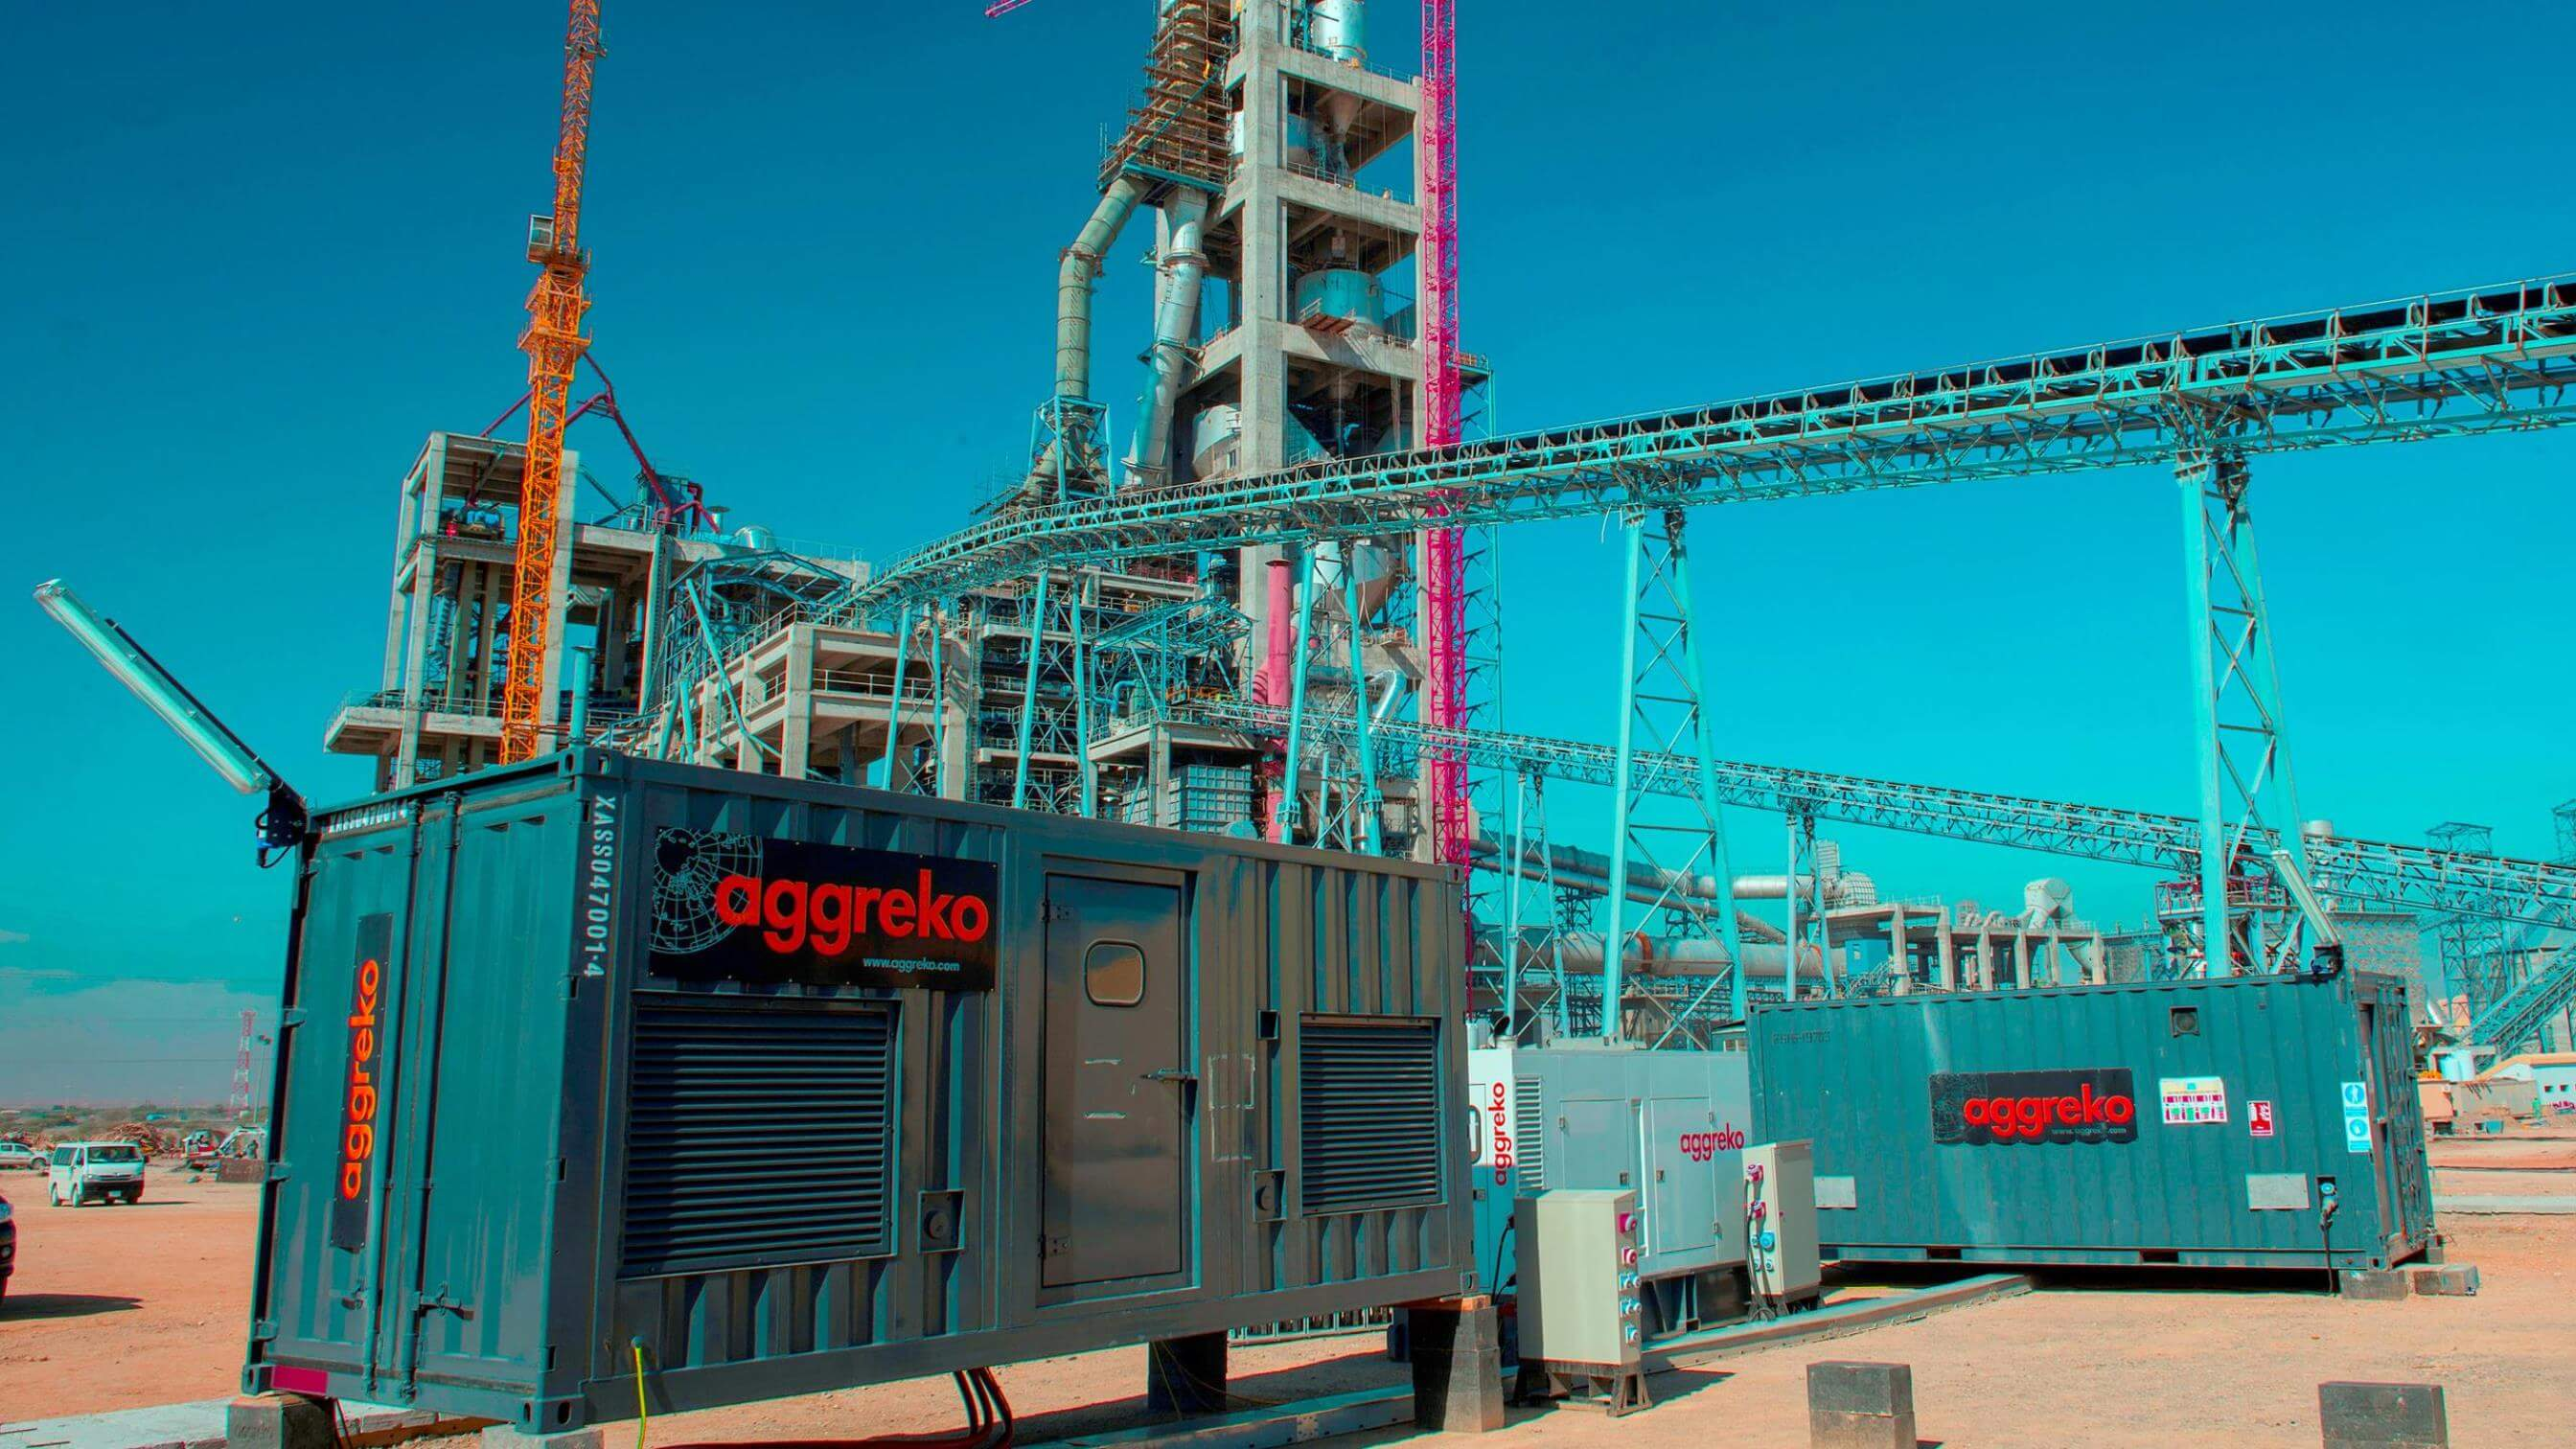 Aggreko generators at a cement production plant